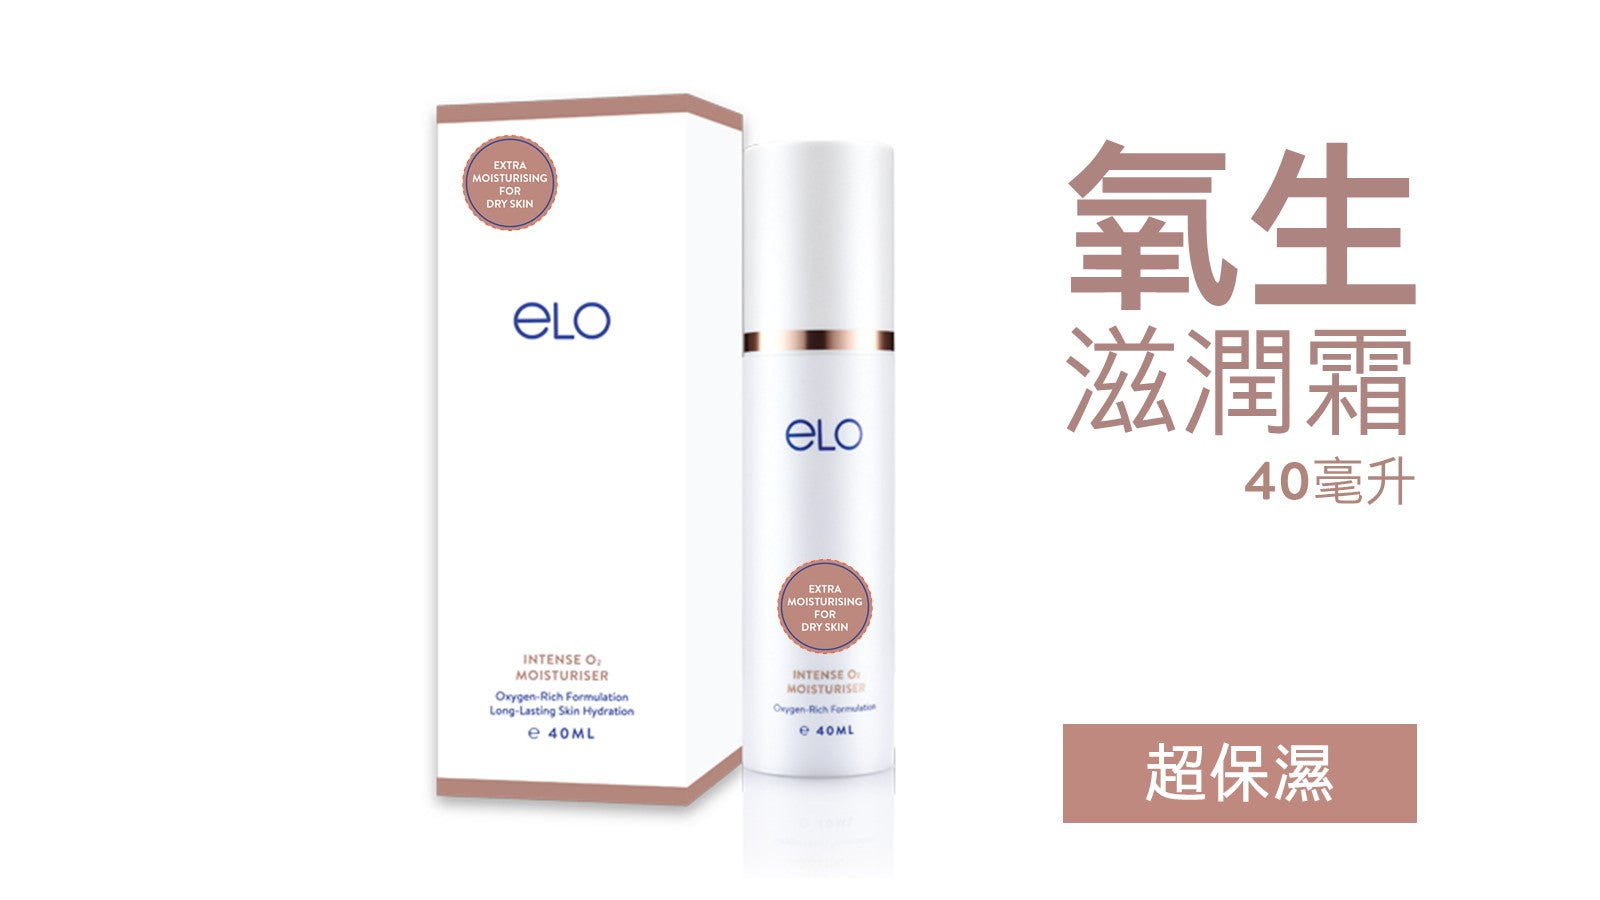 ELO Intense O₂ Moisturiser (For Dry Skin) (Single Tube) (40ml)